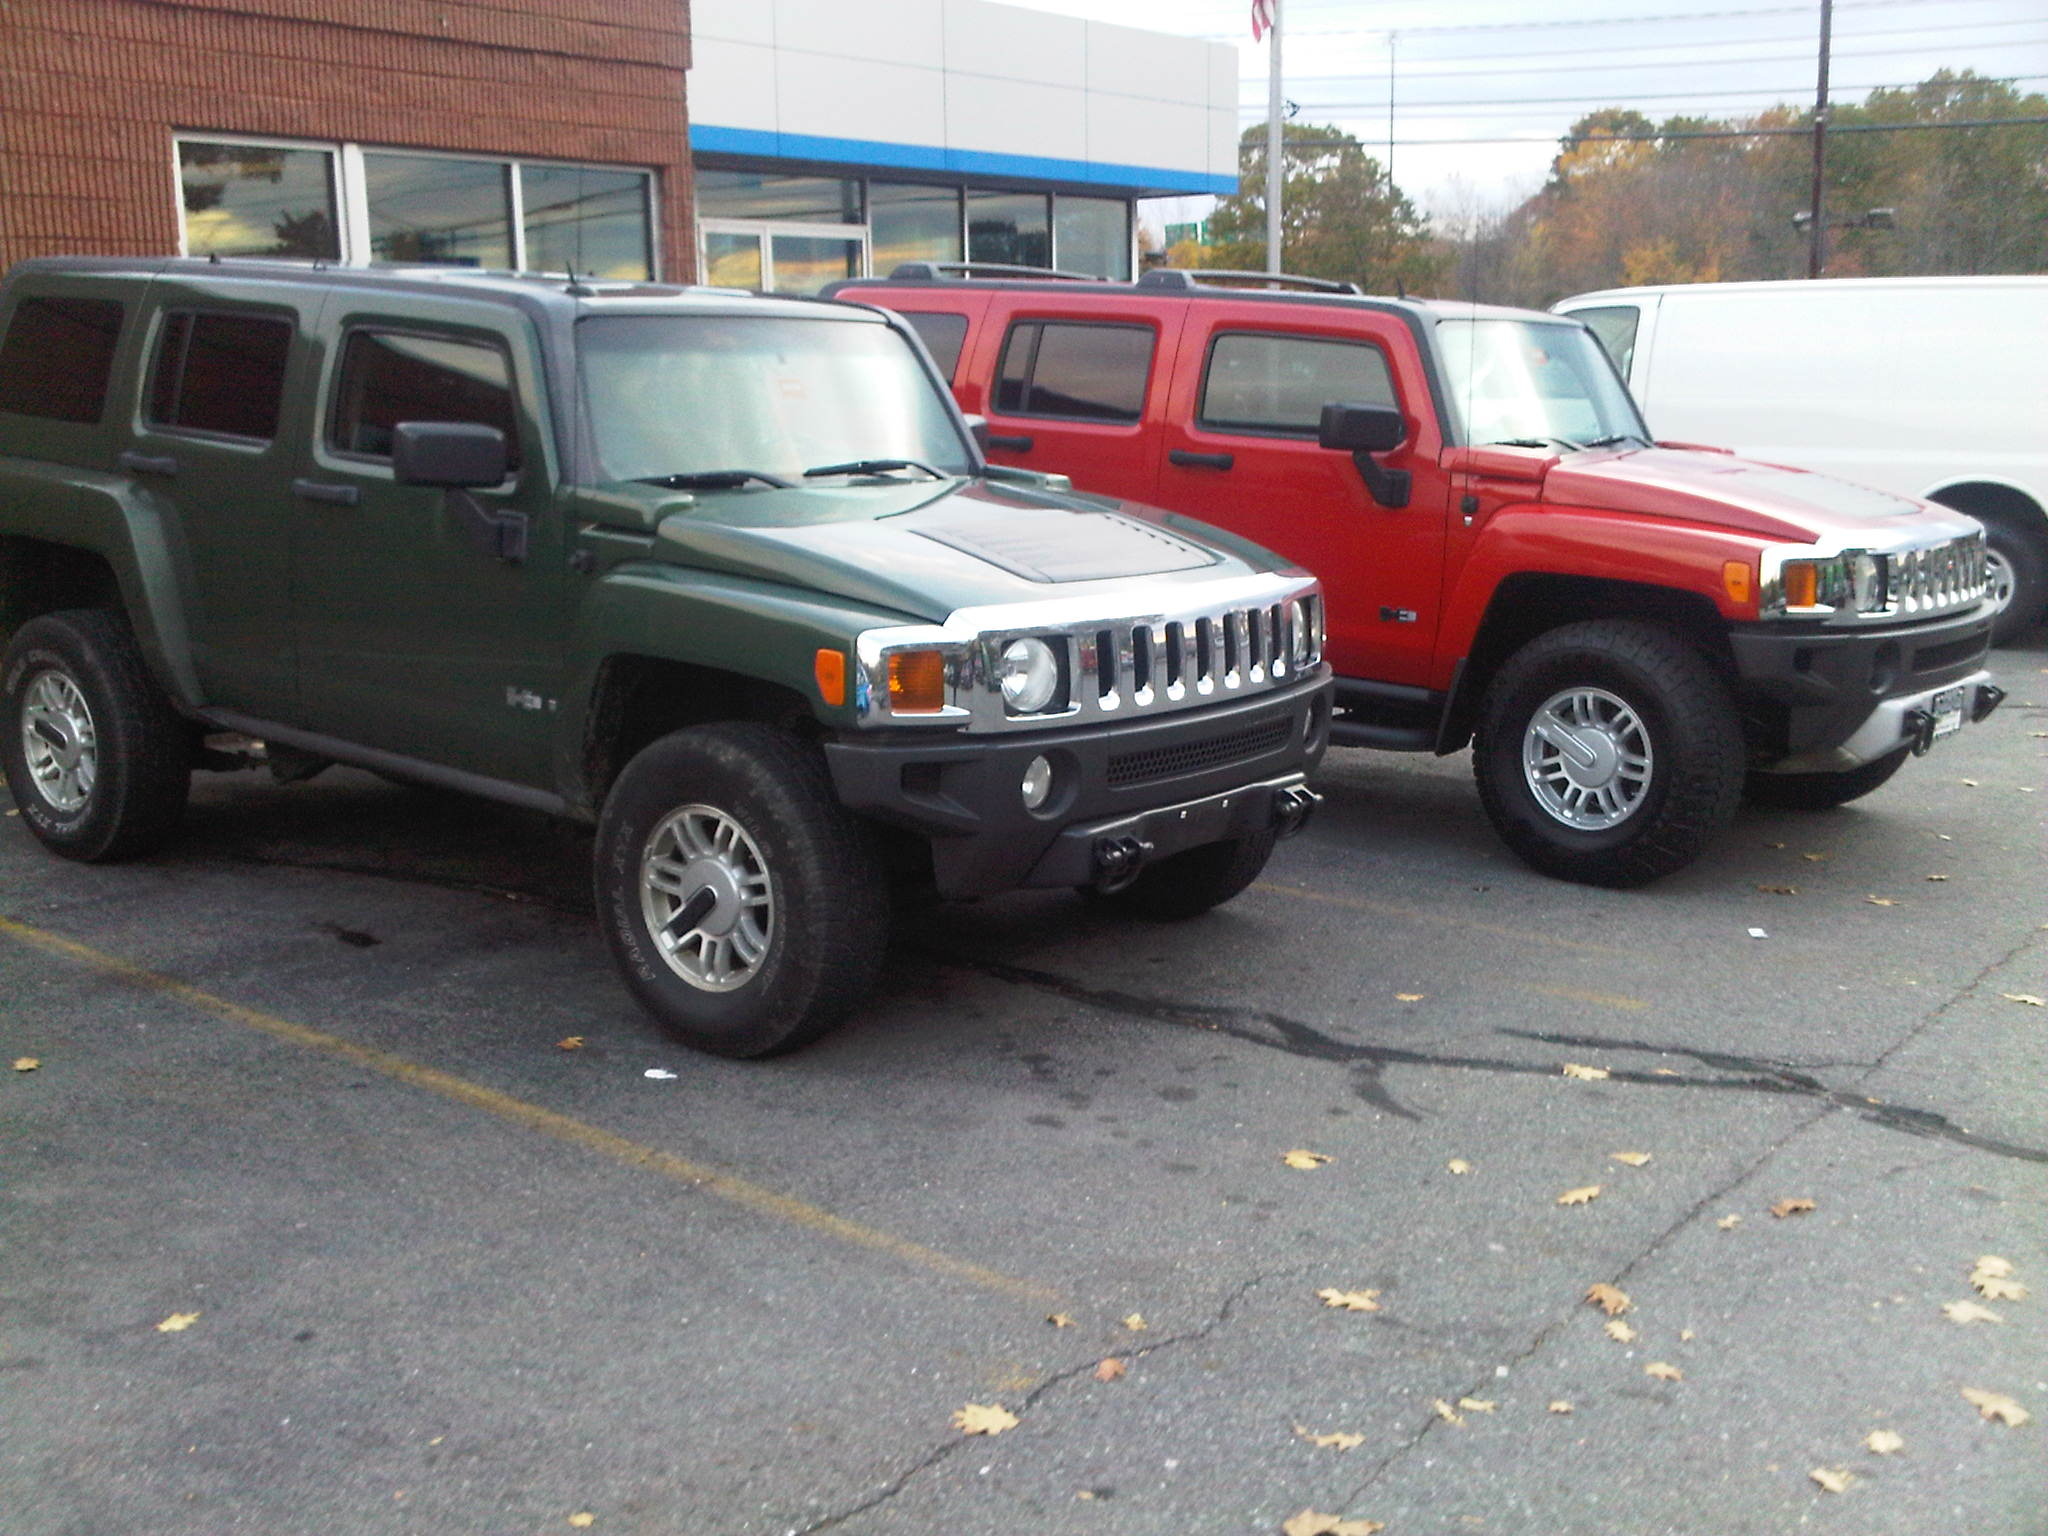 06 shadow green h3 Page 2 Hummer Forums Enthusiast Forum for